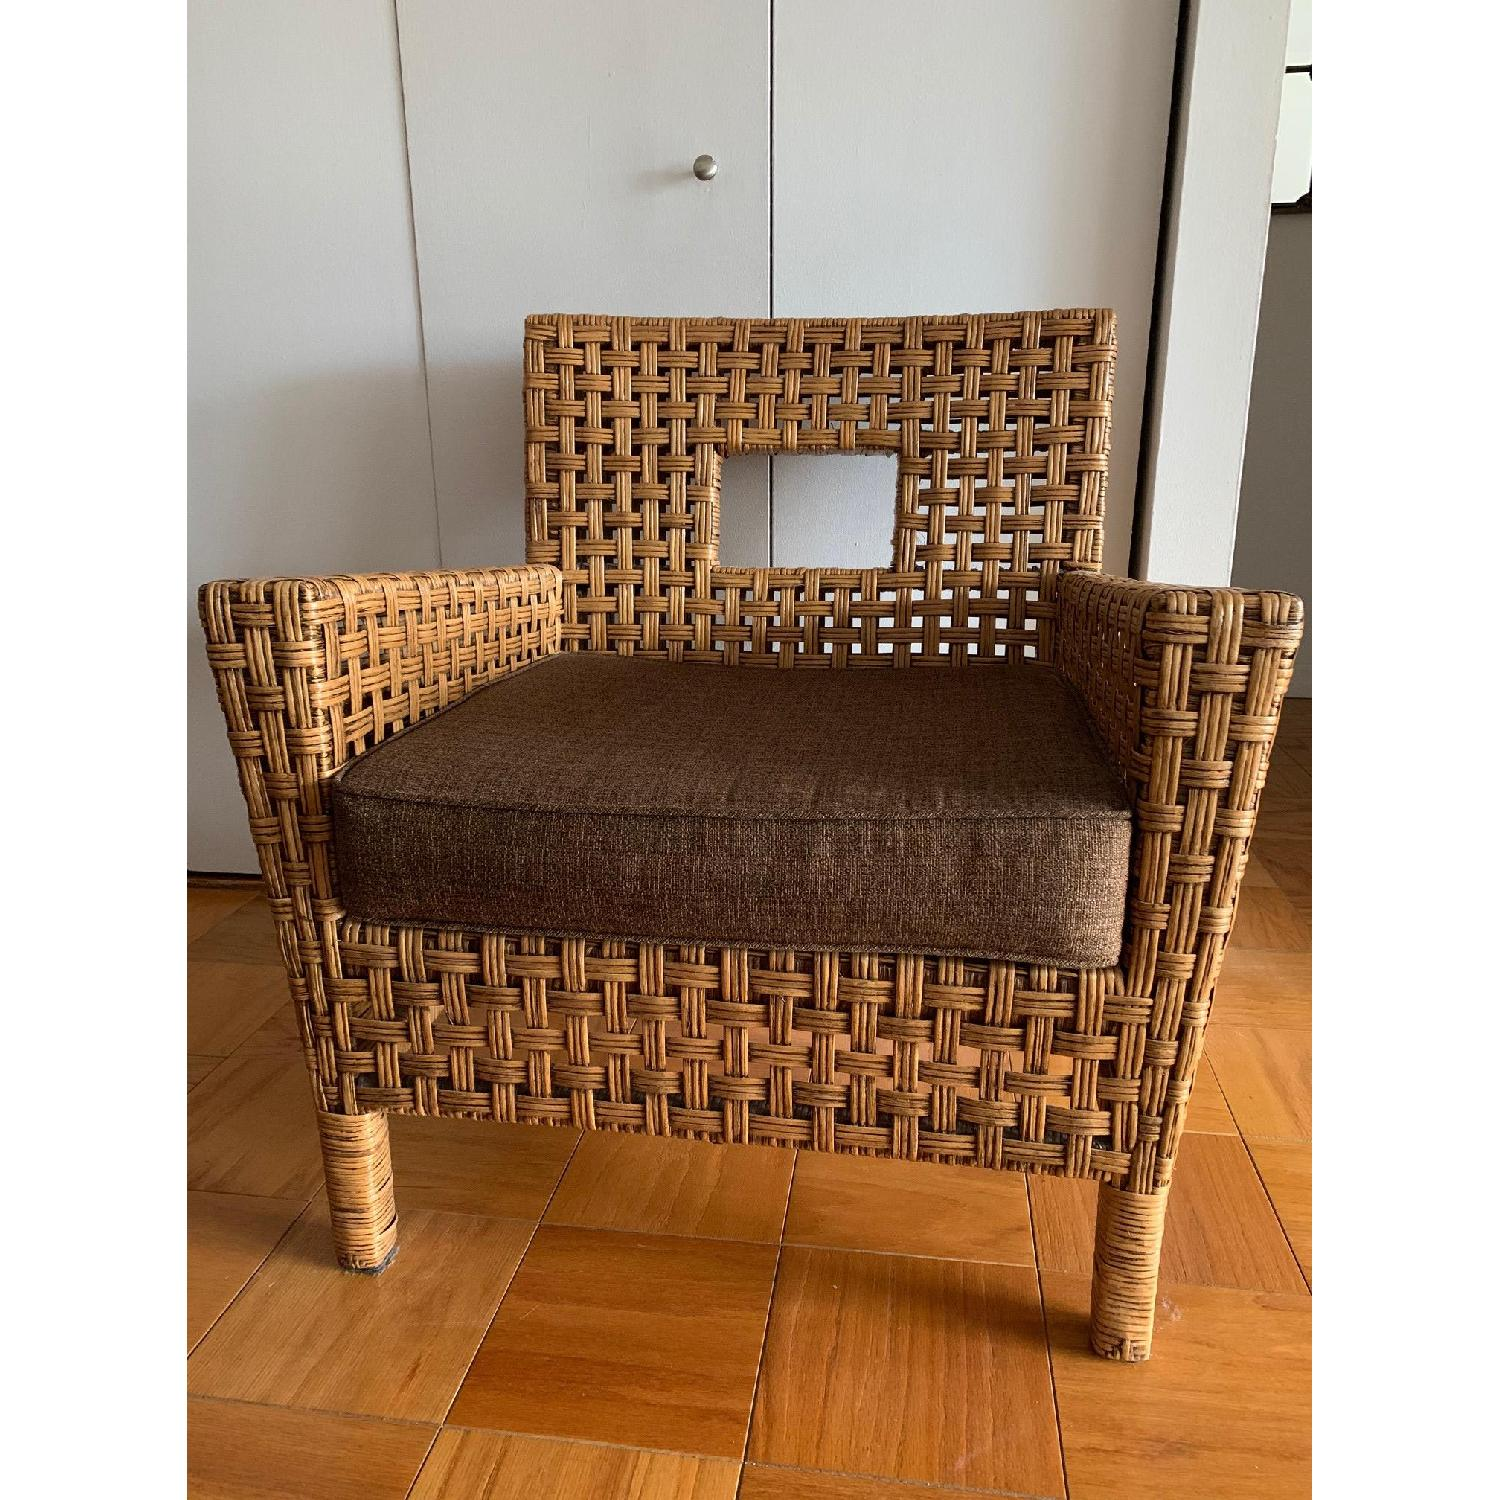 Pier 1 Wicker Chairs w/ Removable Cushions - image-1